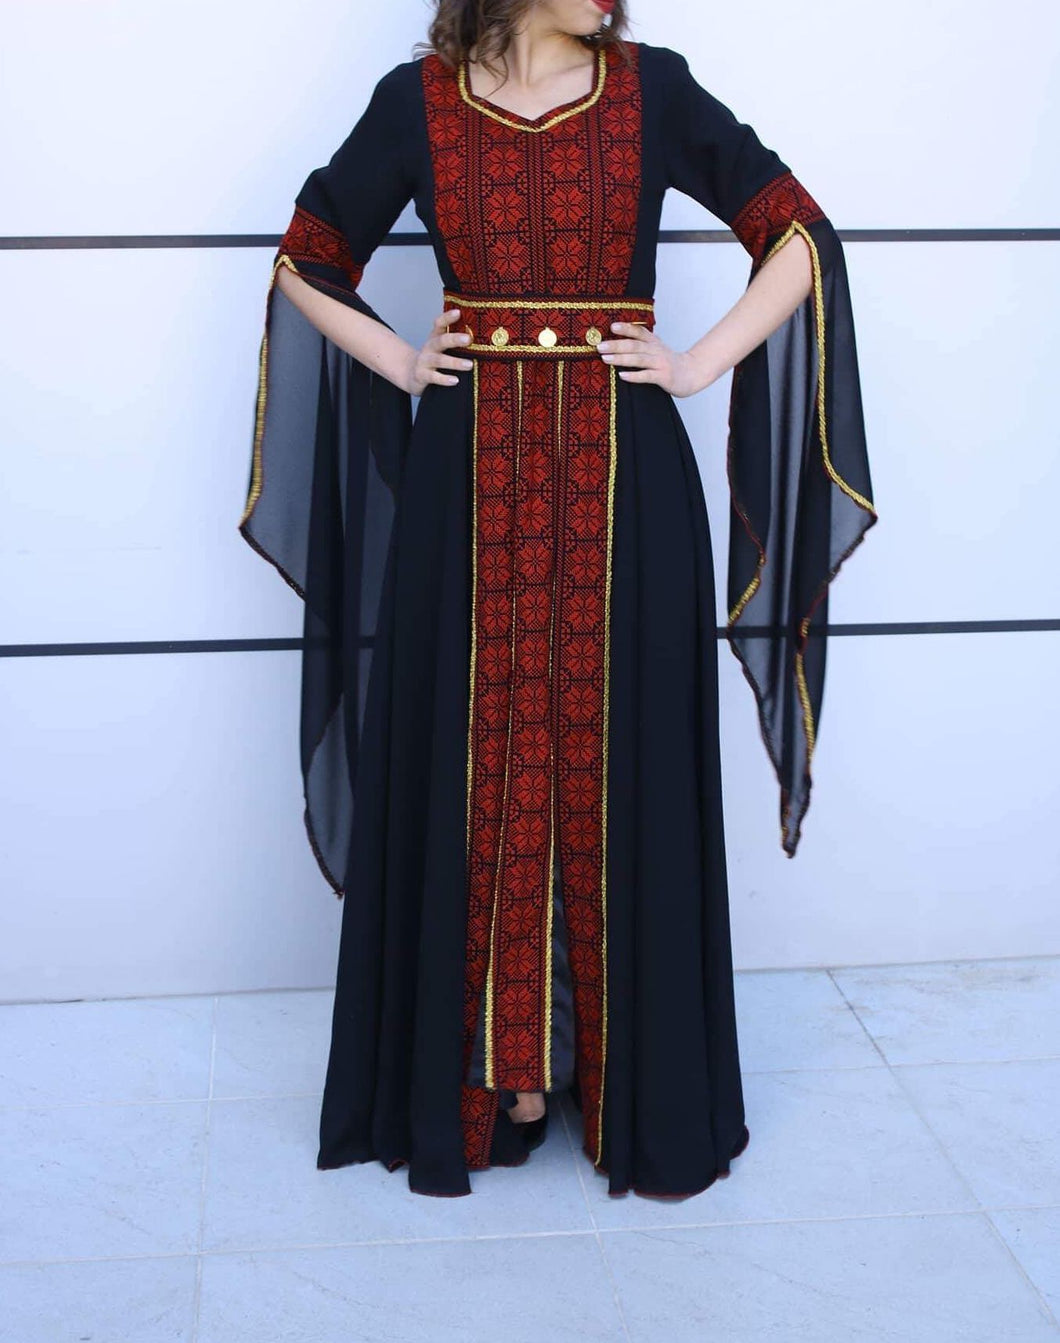 Elegant Palestinian Thobe Maxi Dress Black and Red Charming Embroidery Flowy Sleeves